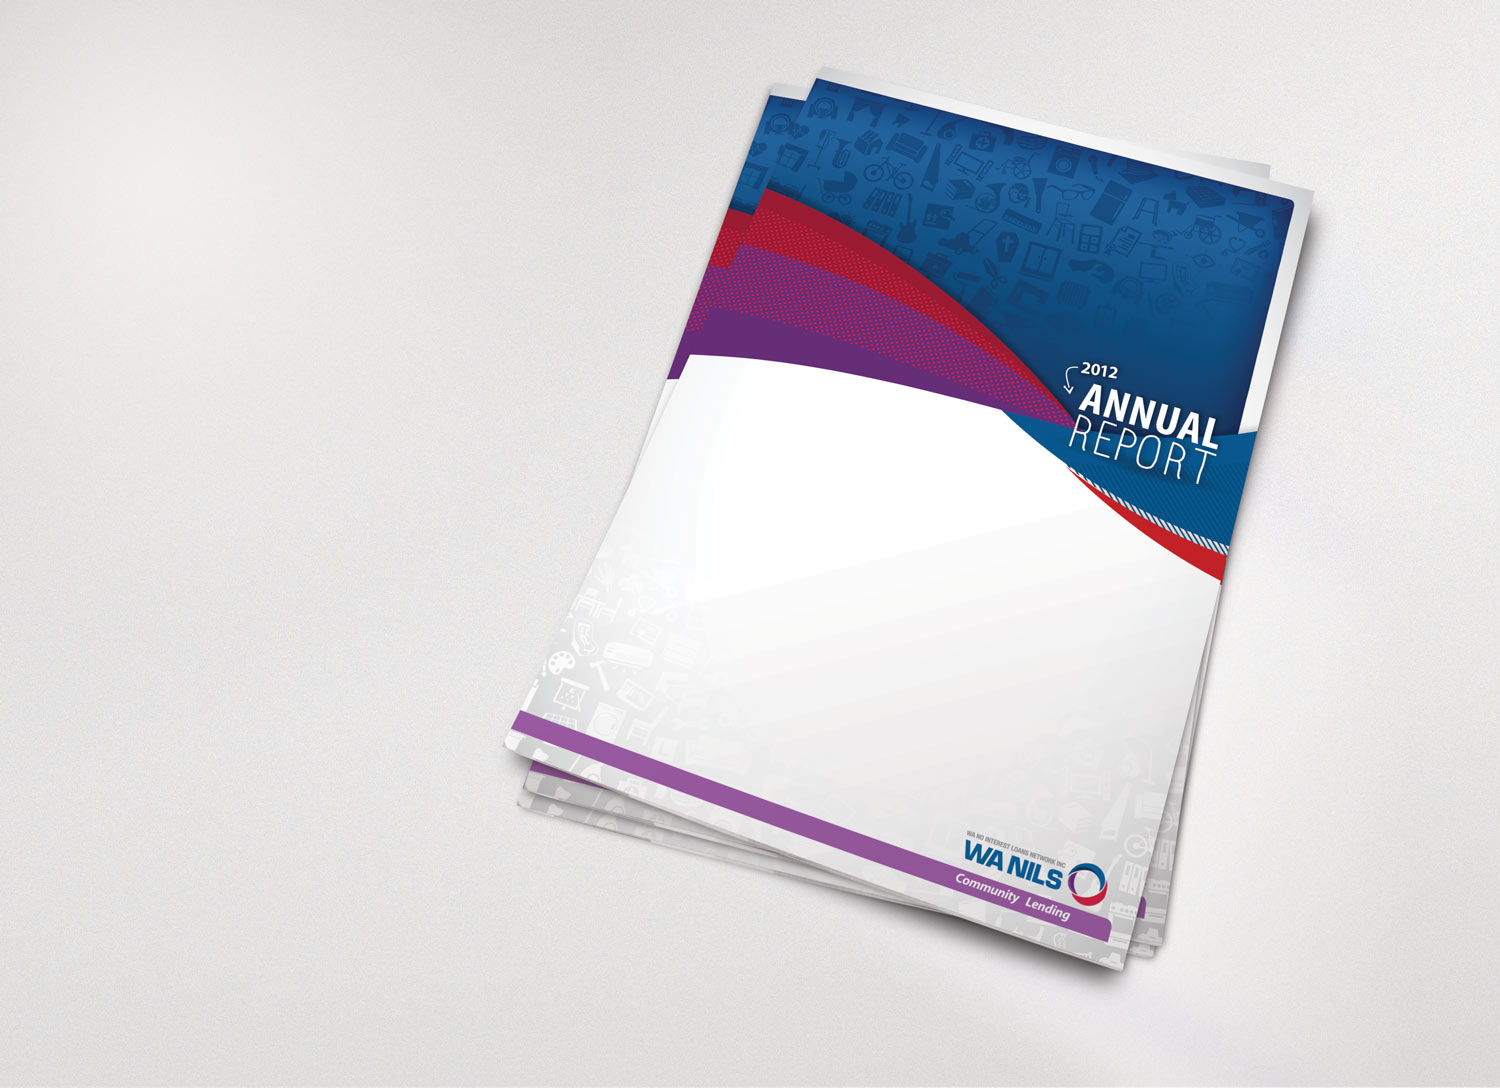 Totem-Creative-Design-&-Branding_WANILS-Annual-Report-design-Cover.jpg